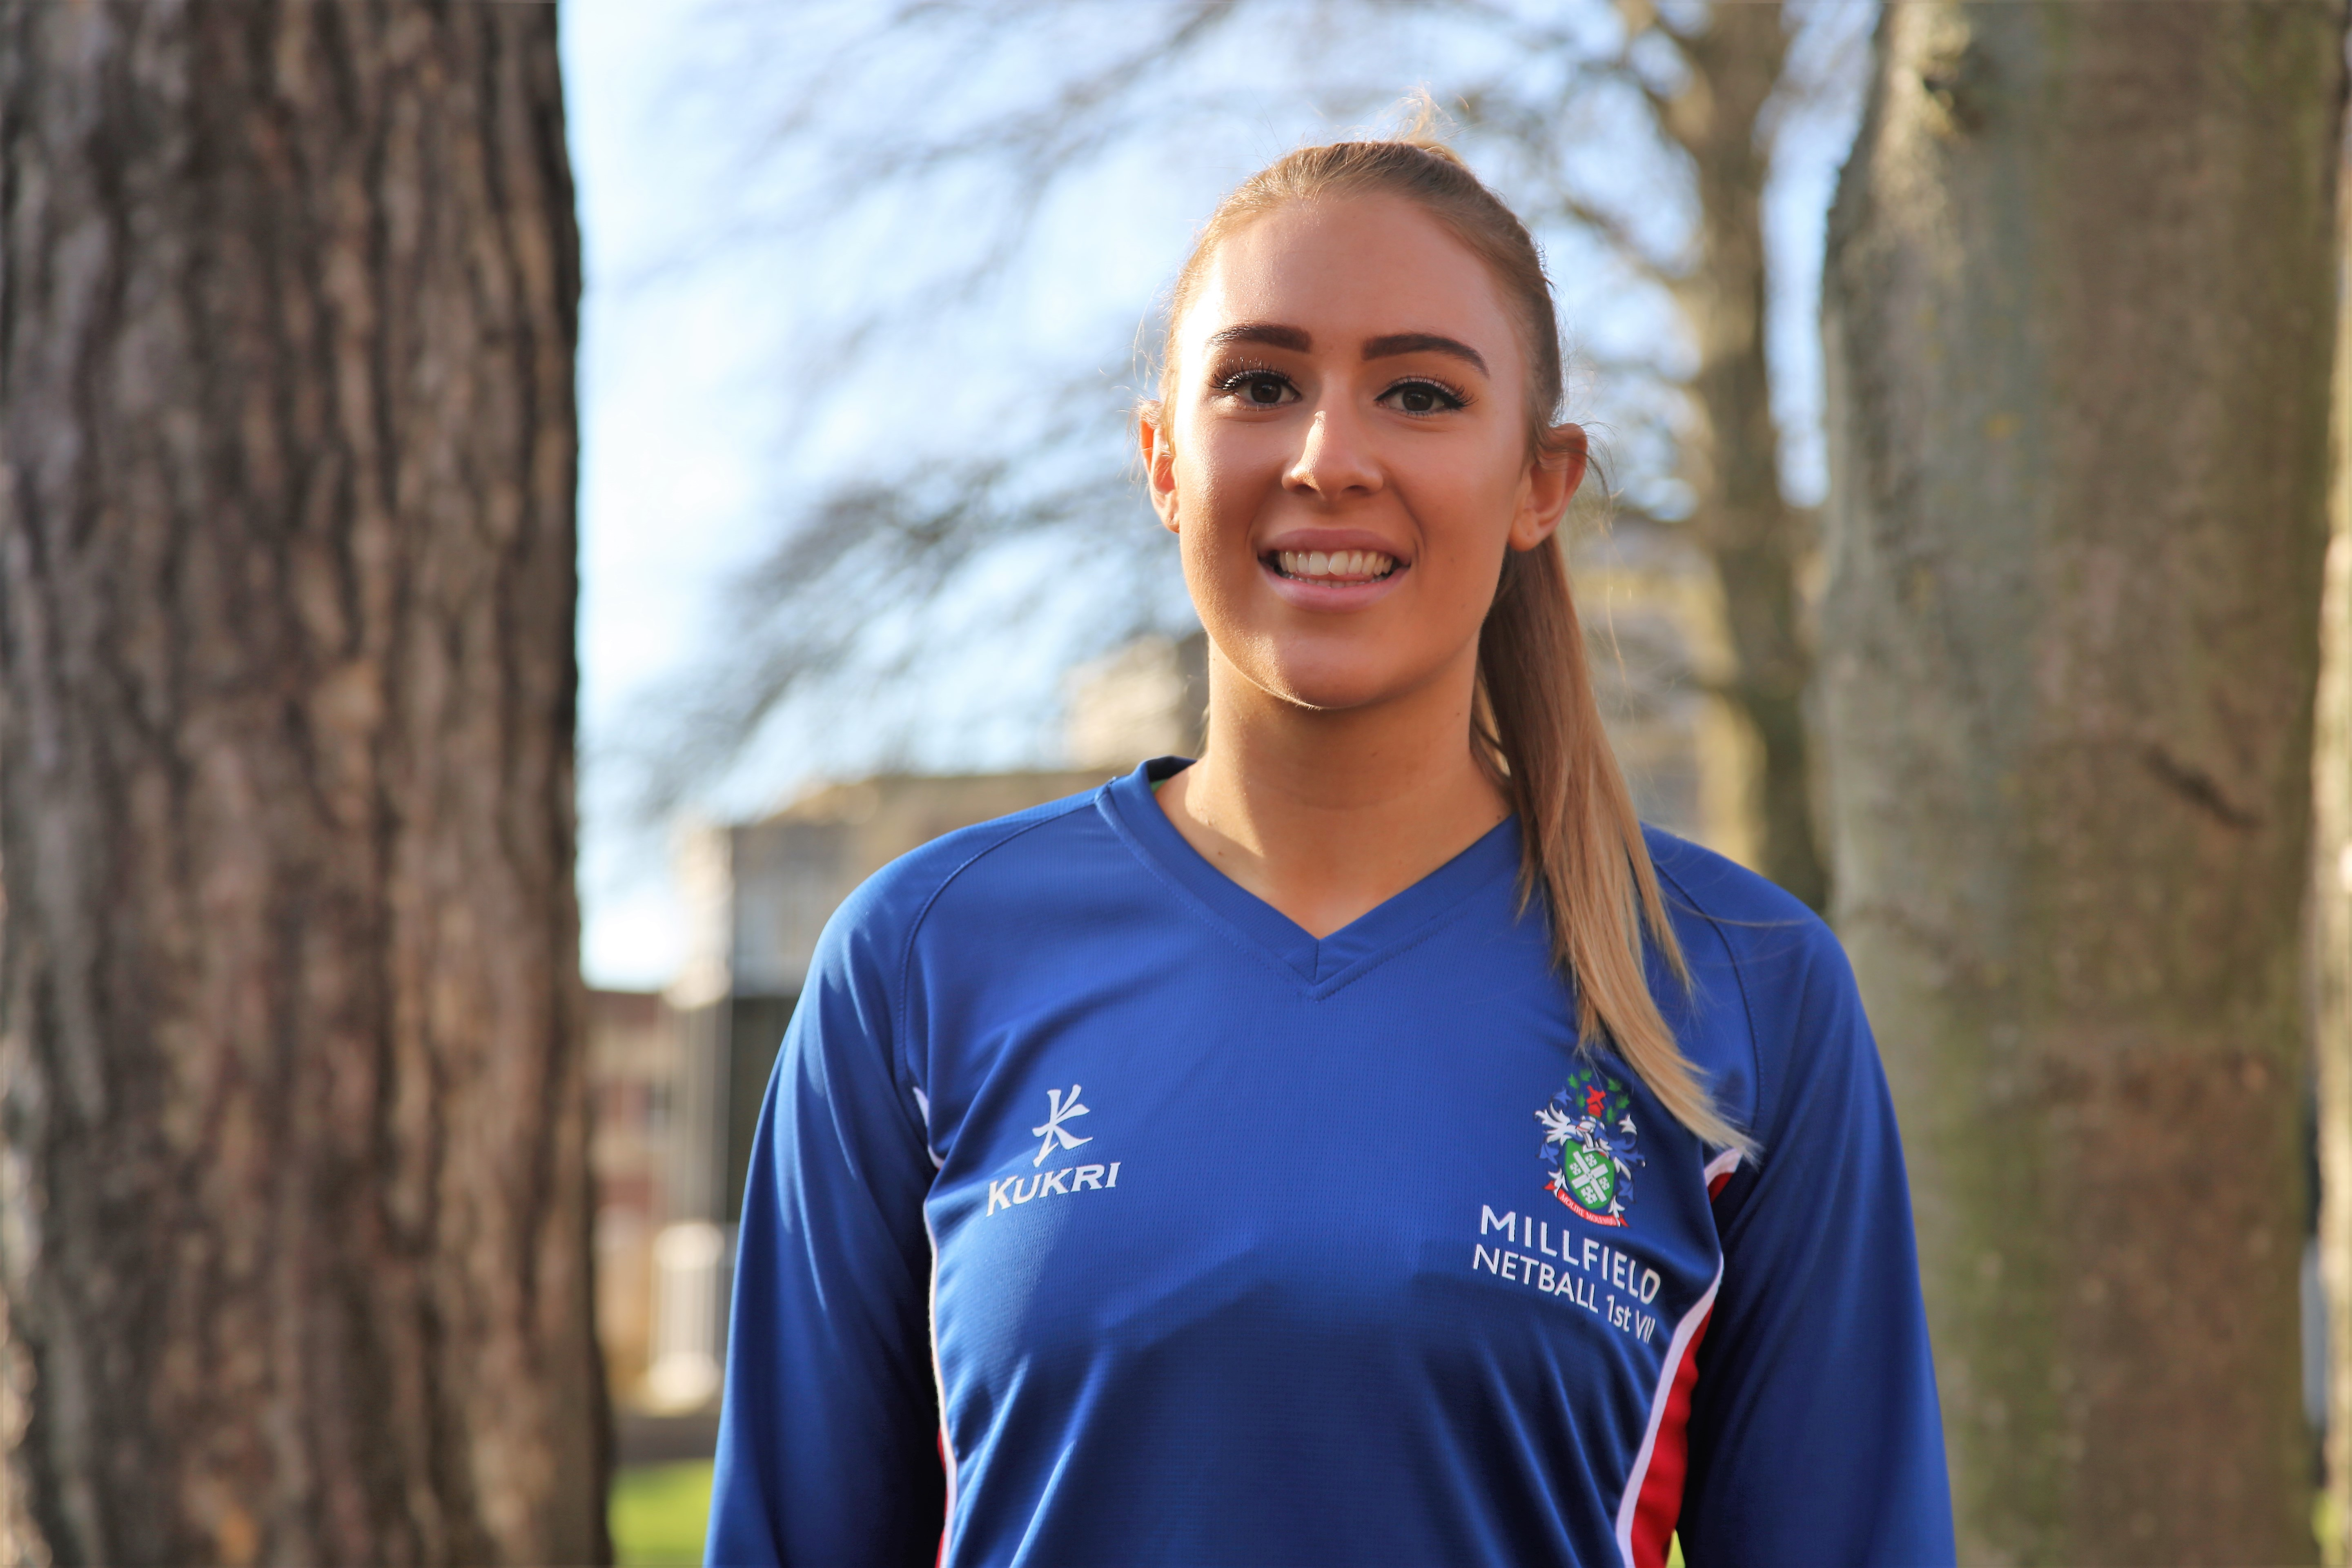 Millfield-Upper-Sixth-pupil-and-Netball-1st-team-Captain-Hannah-Passmore-from-Wells